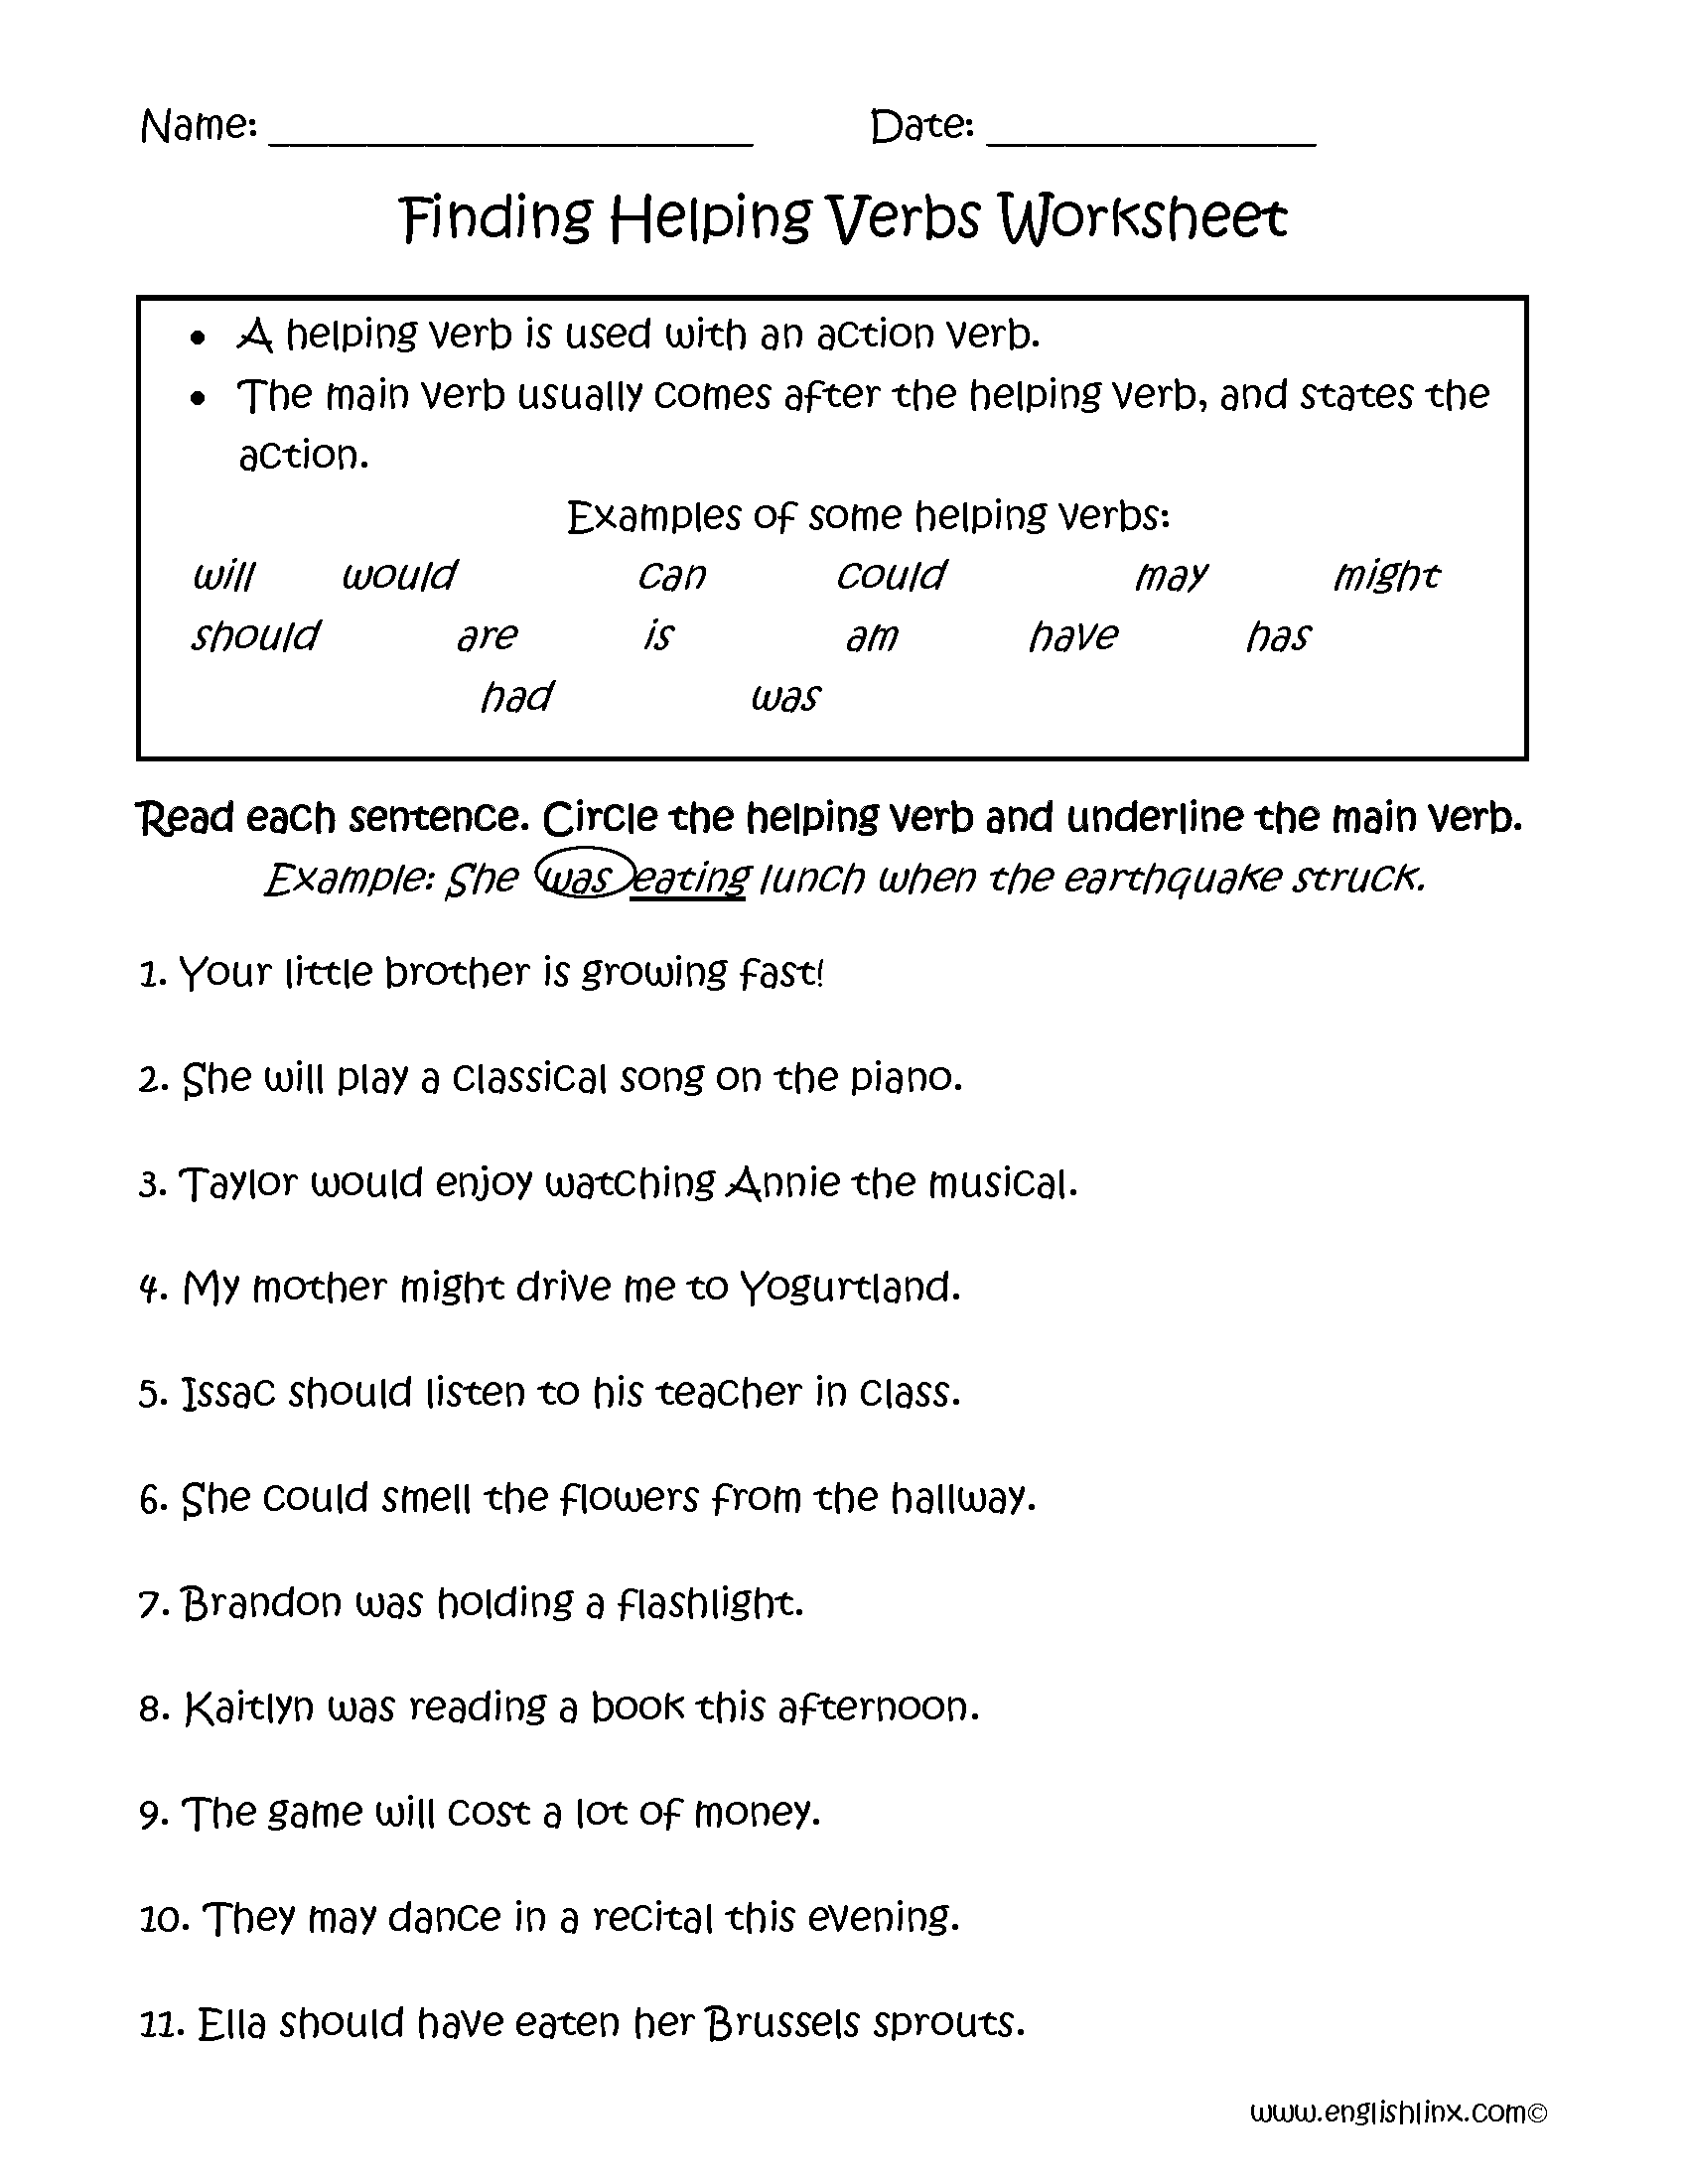 medium resolution of Helping And Action Verb Worksheets   Printable Worksheets and Activities  for Teachers